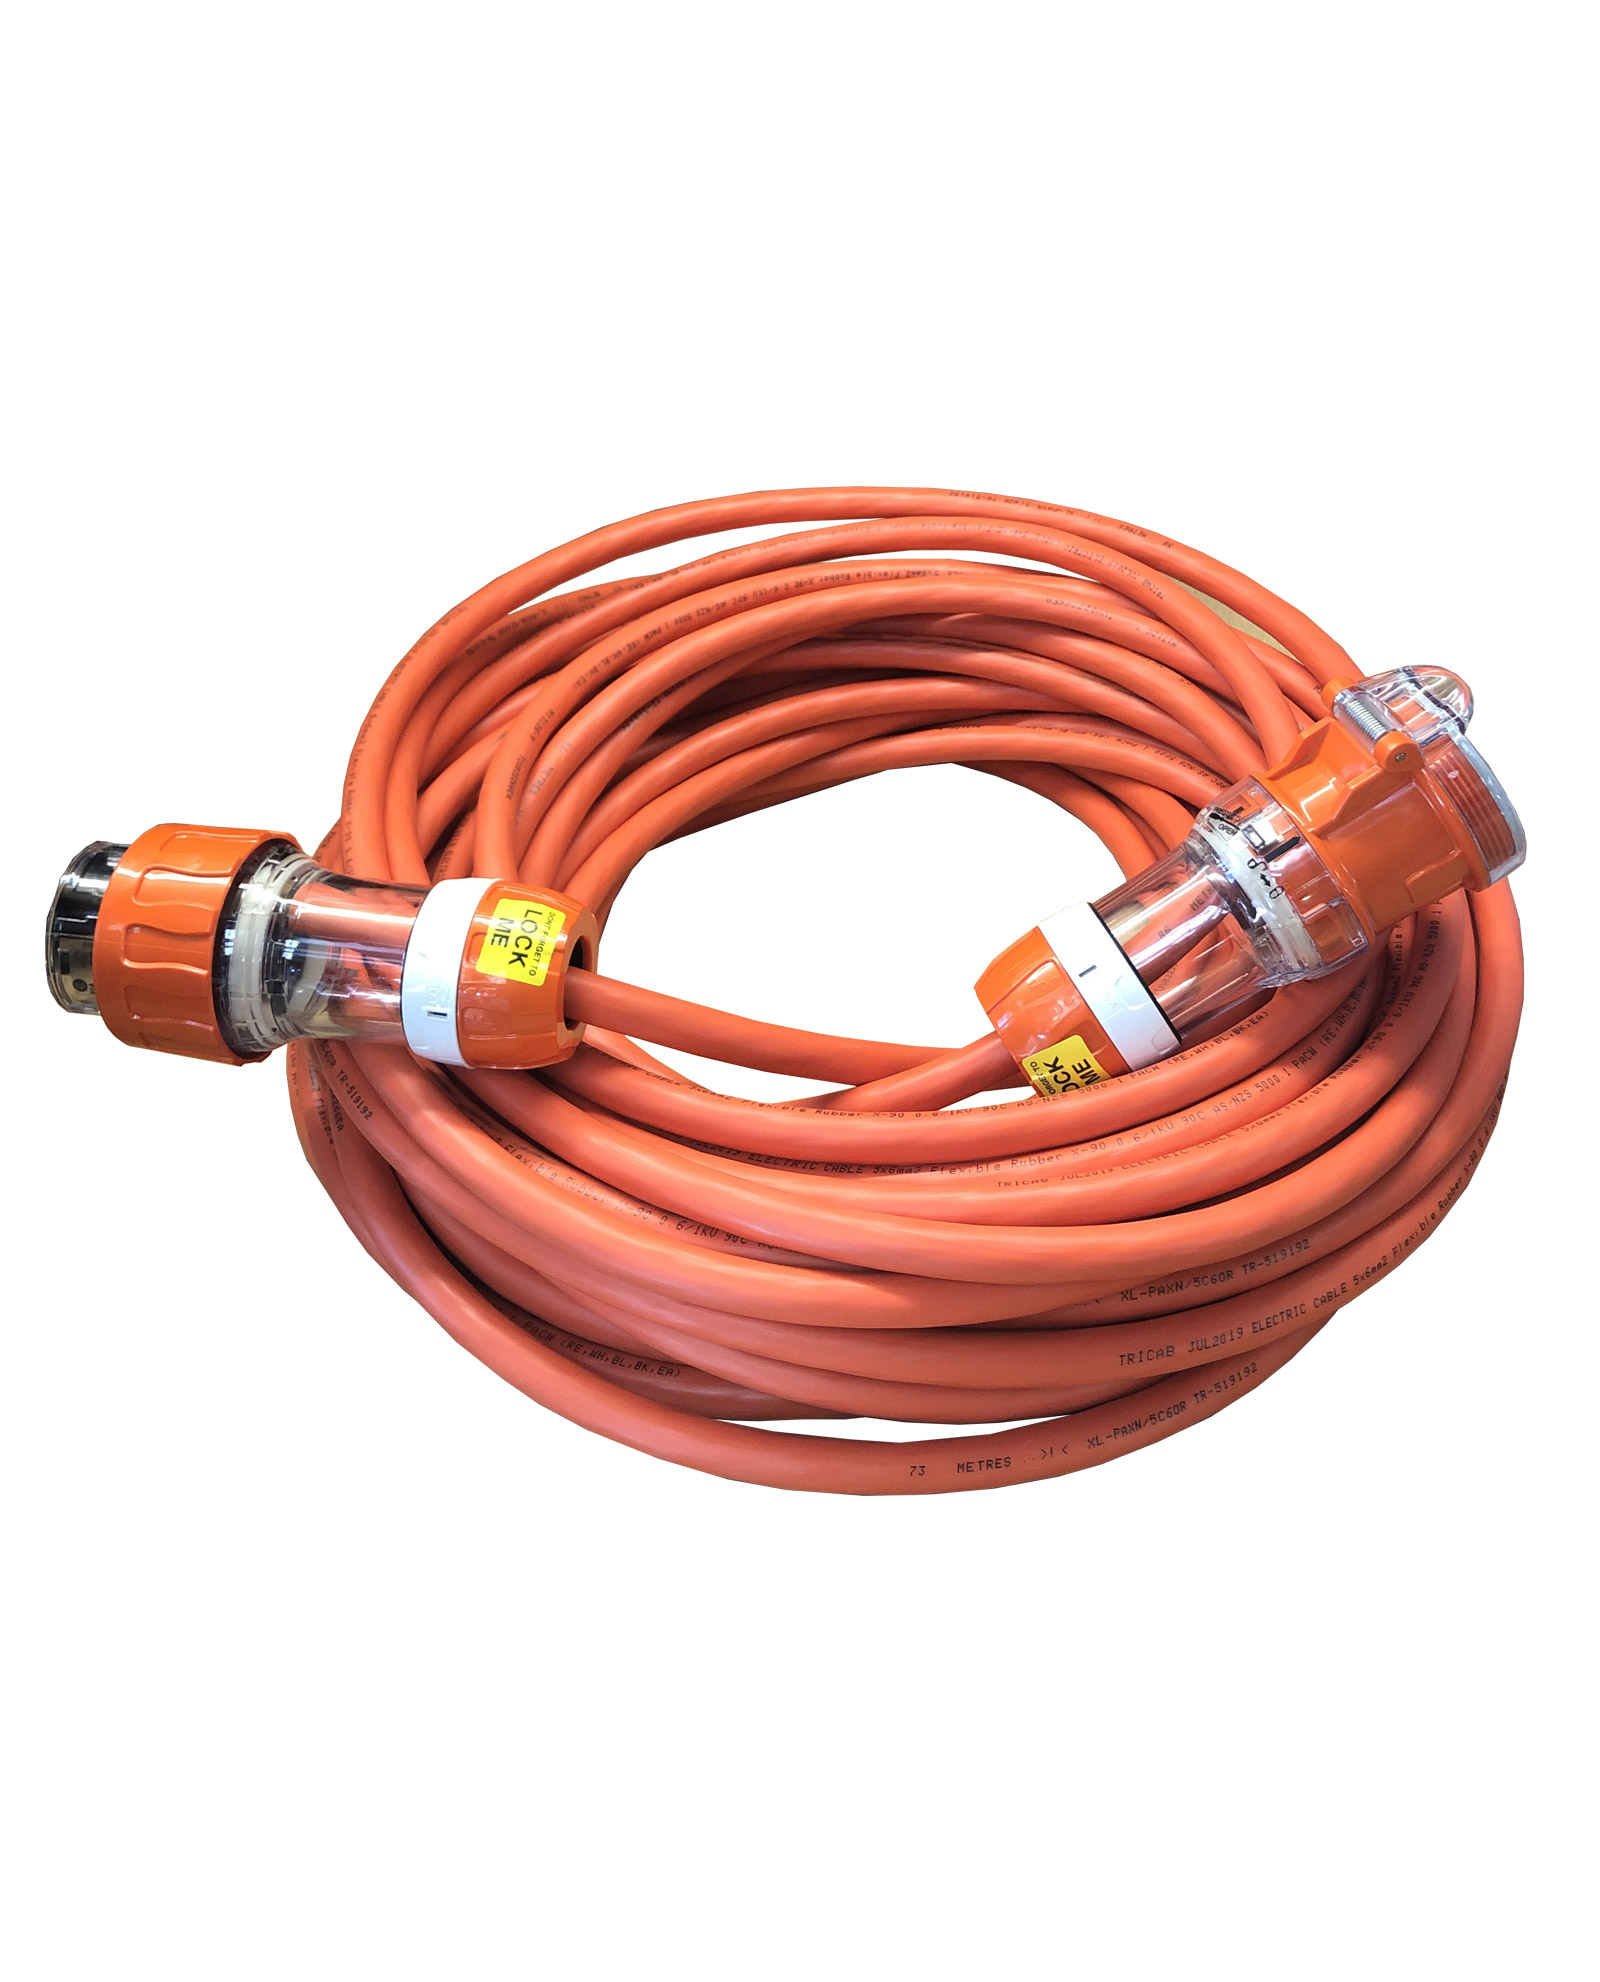 3 Phase Cable Pdl 56 Series Orange